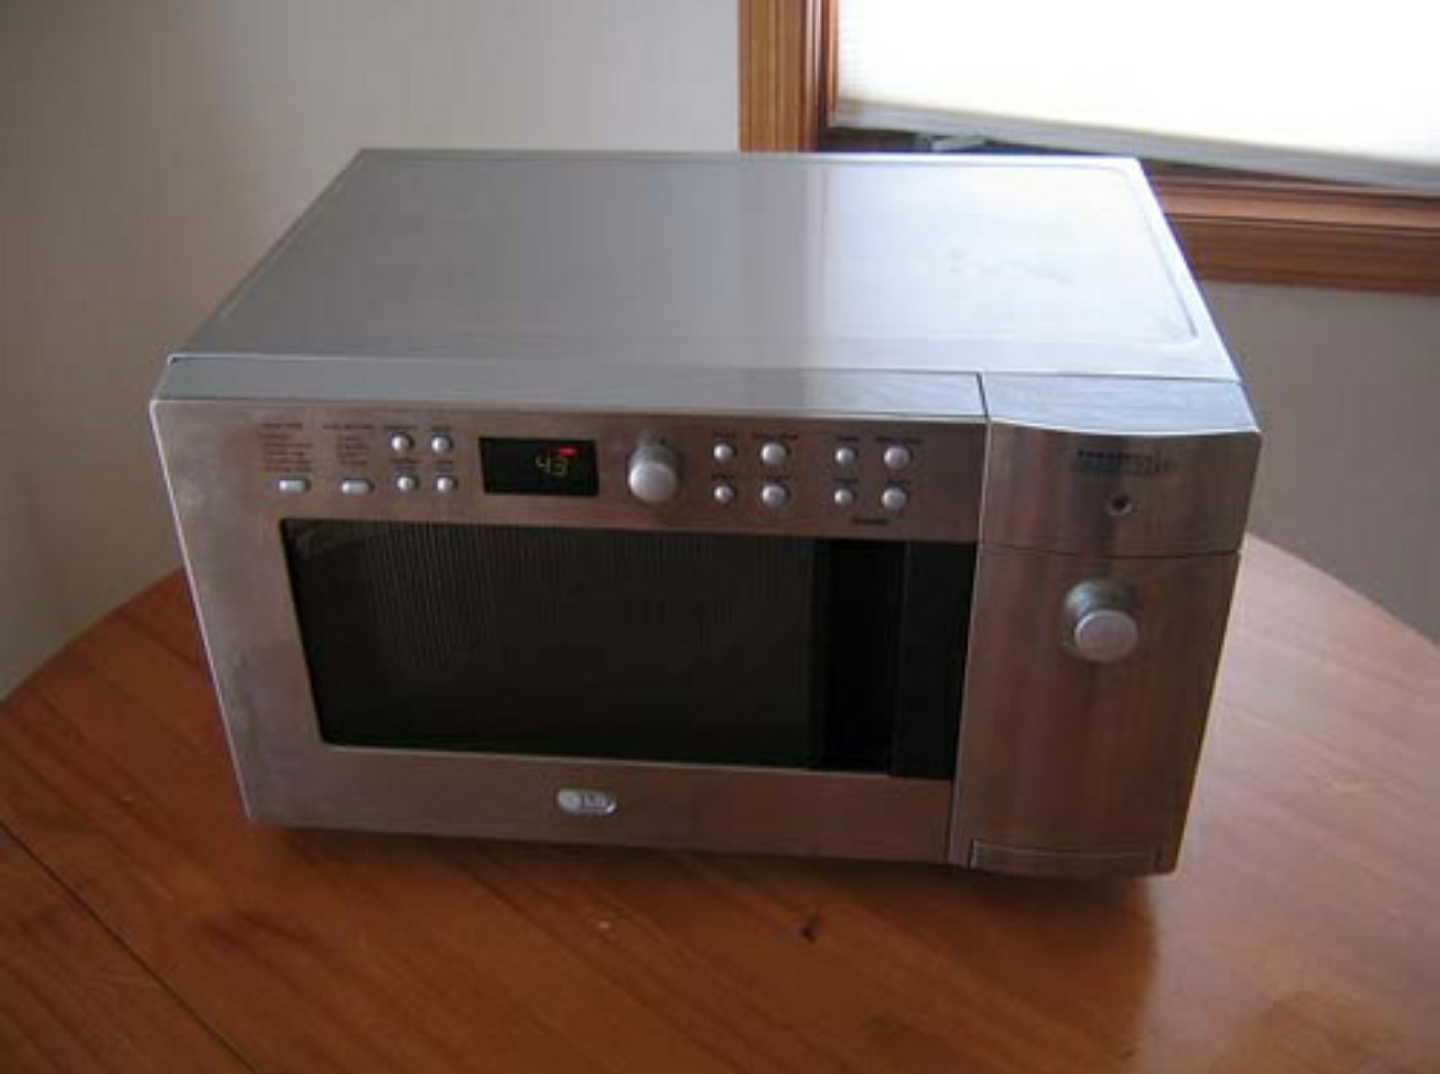 microwave proof with oven others either anti outer powder grillers them rust gizmocooks features toaster cavity stainless metal steel or everyday cooking redefined of recipes exteriors the making coated made are